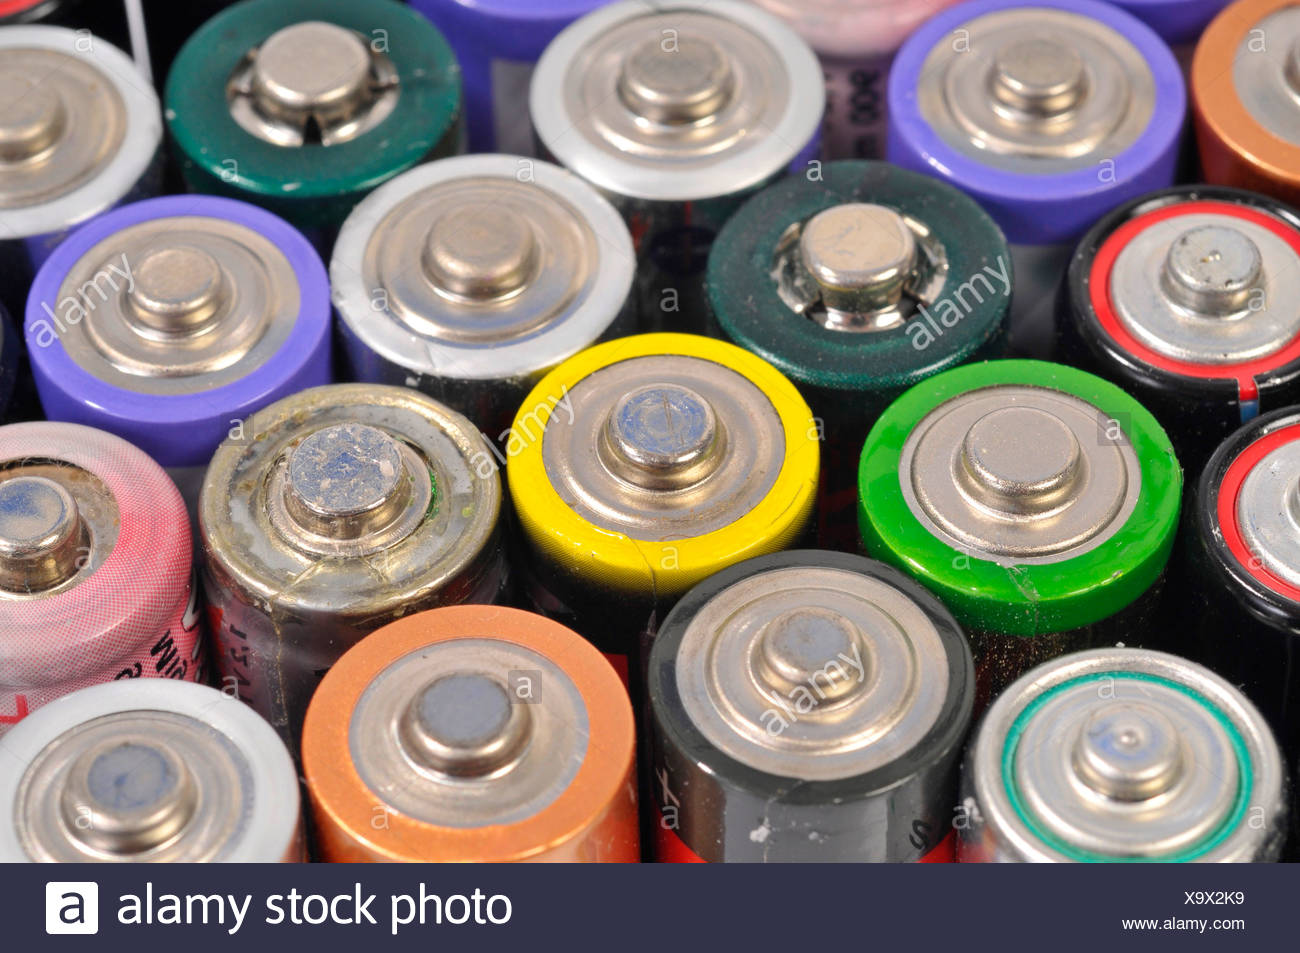 Used, empty AA and rechargeable batteries - Stock Image